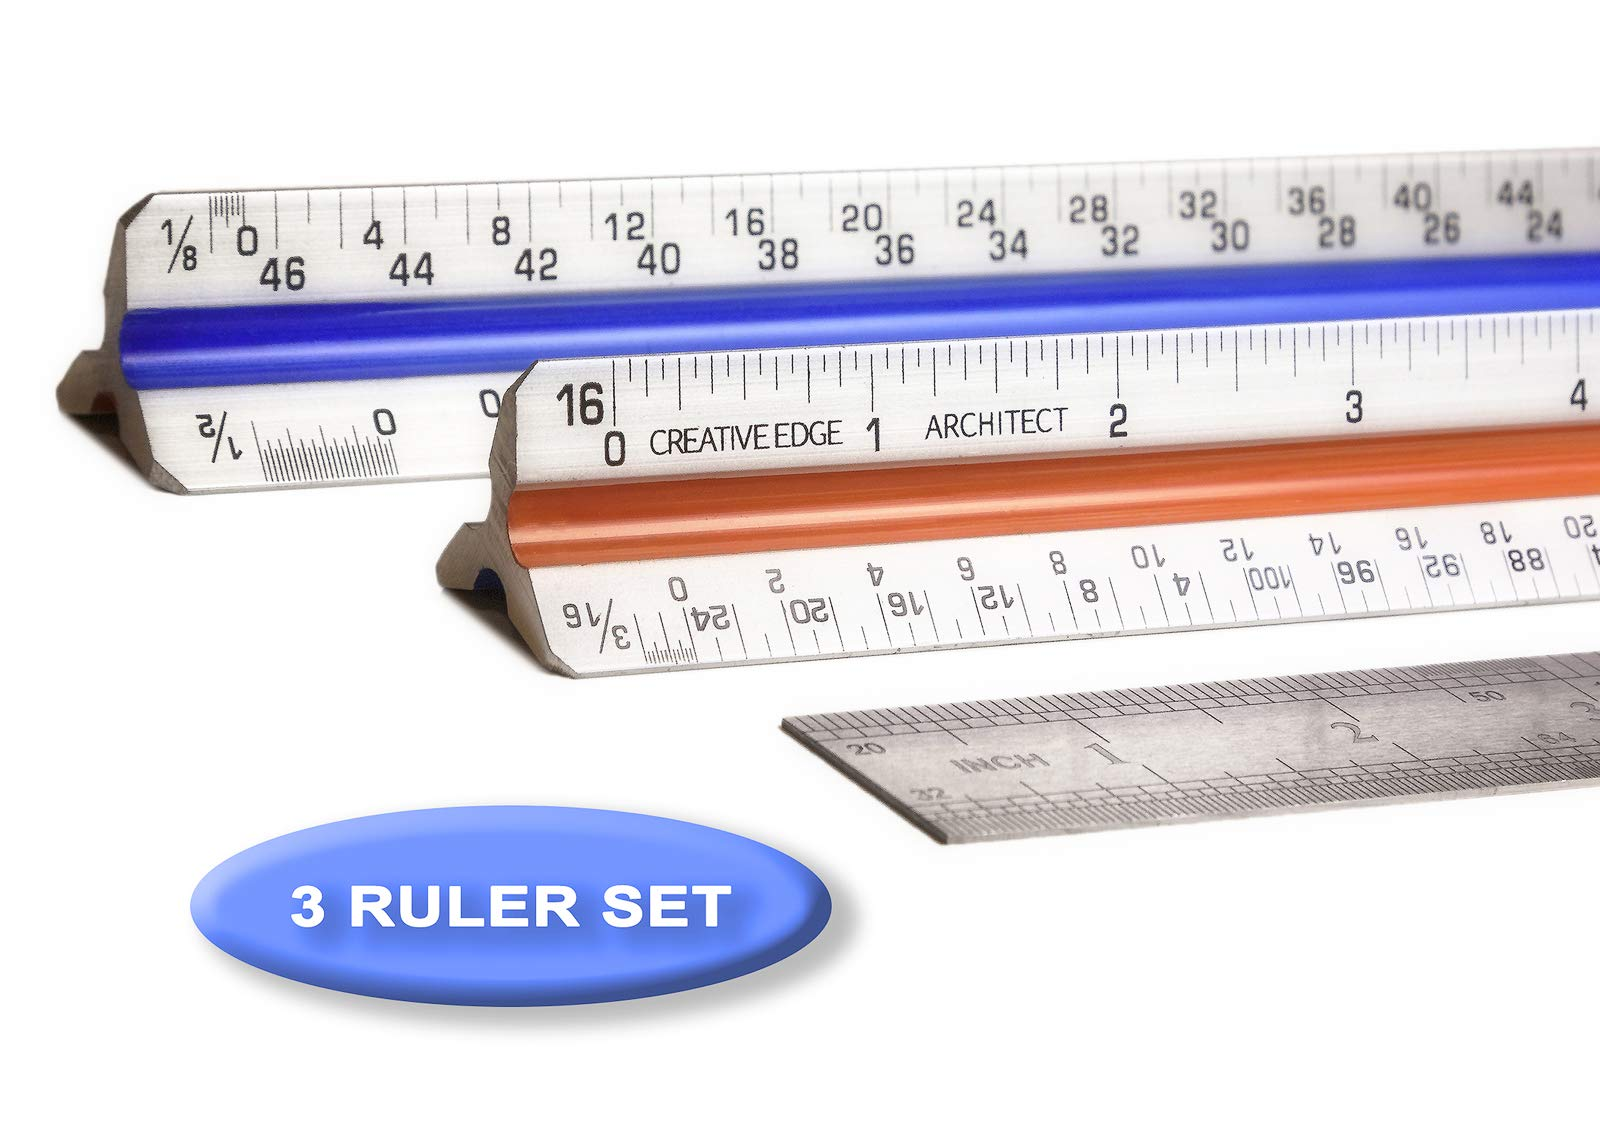 Creative Edge Architectural Scale Ruler - Set of 3 Rulers | 2 Triangular 12'' Architect Rulers with Imperial Scale and 1 Standard 12'' Stainless Steel Ruler - Color Coded by Creative Edge